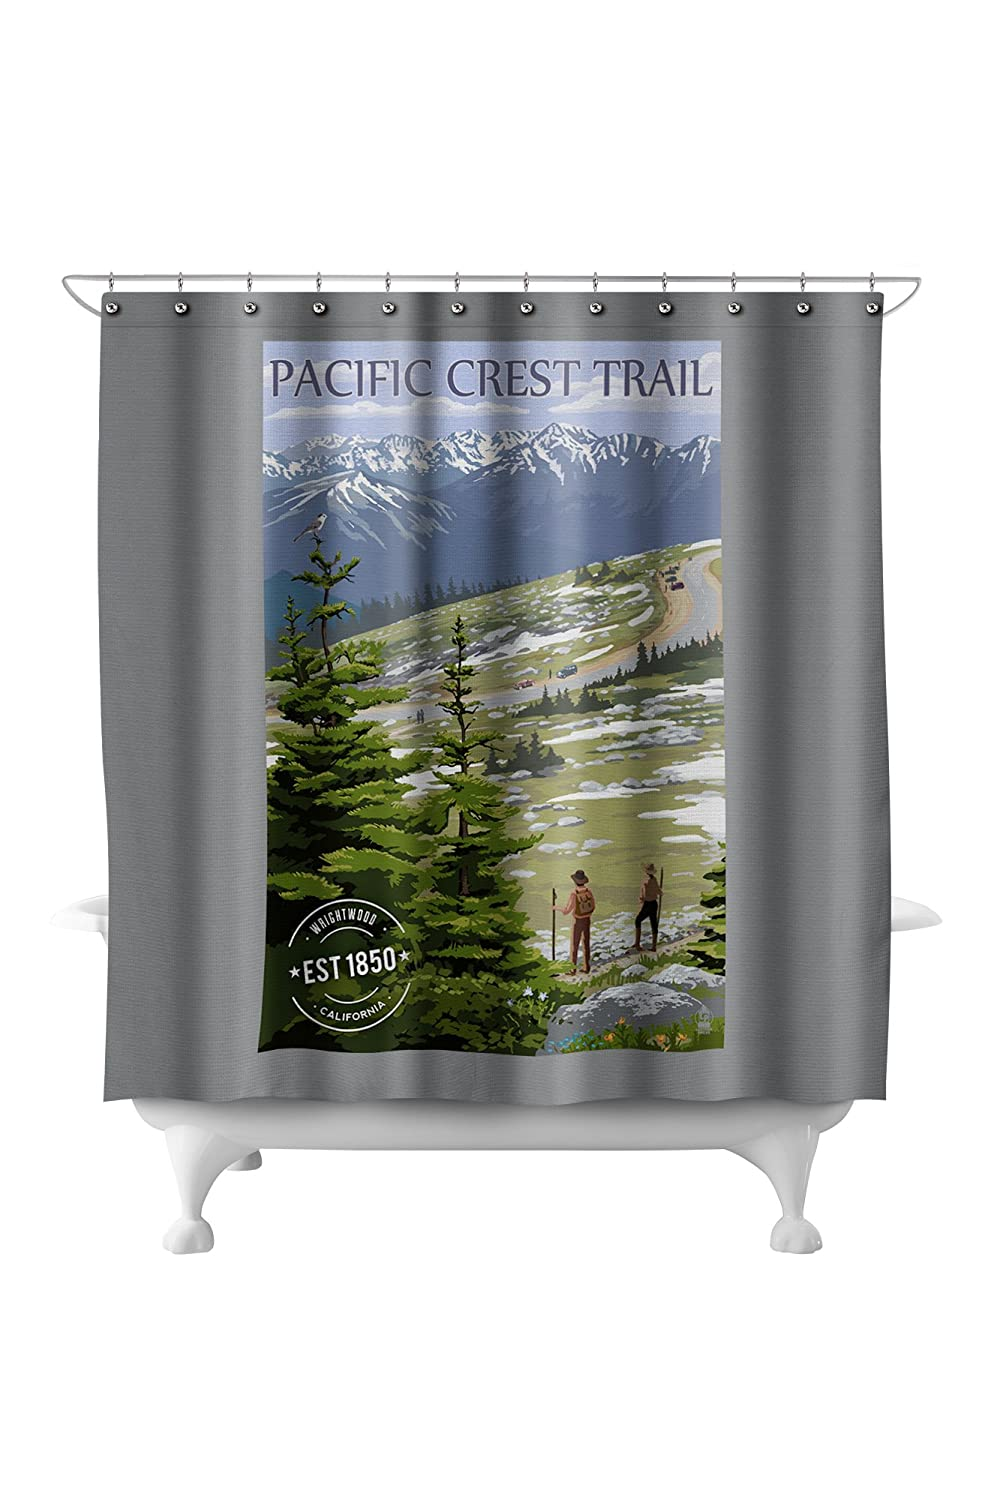 Wrightwood, California - Pacific Crest Trail and Hikers - Rubber Stamp (71x74 Polyester Shower Curtain)